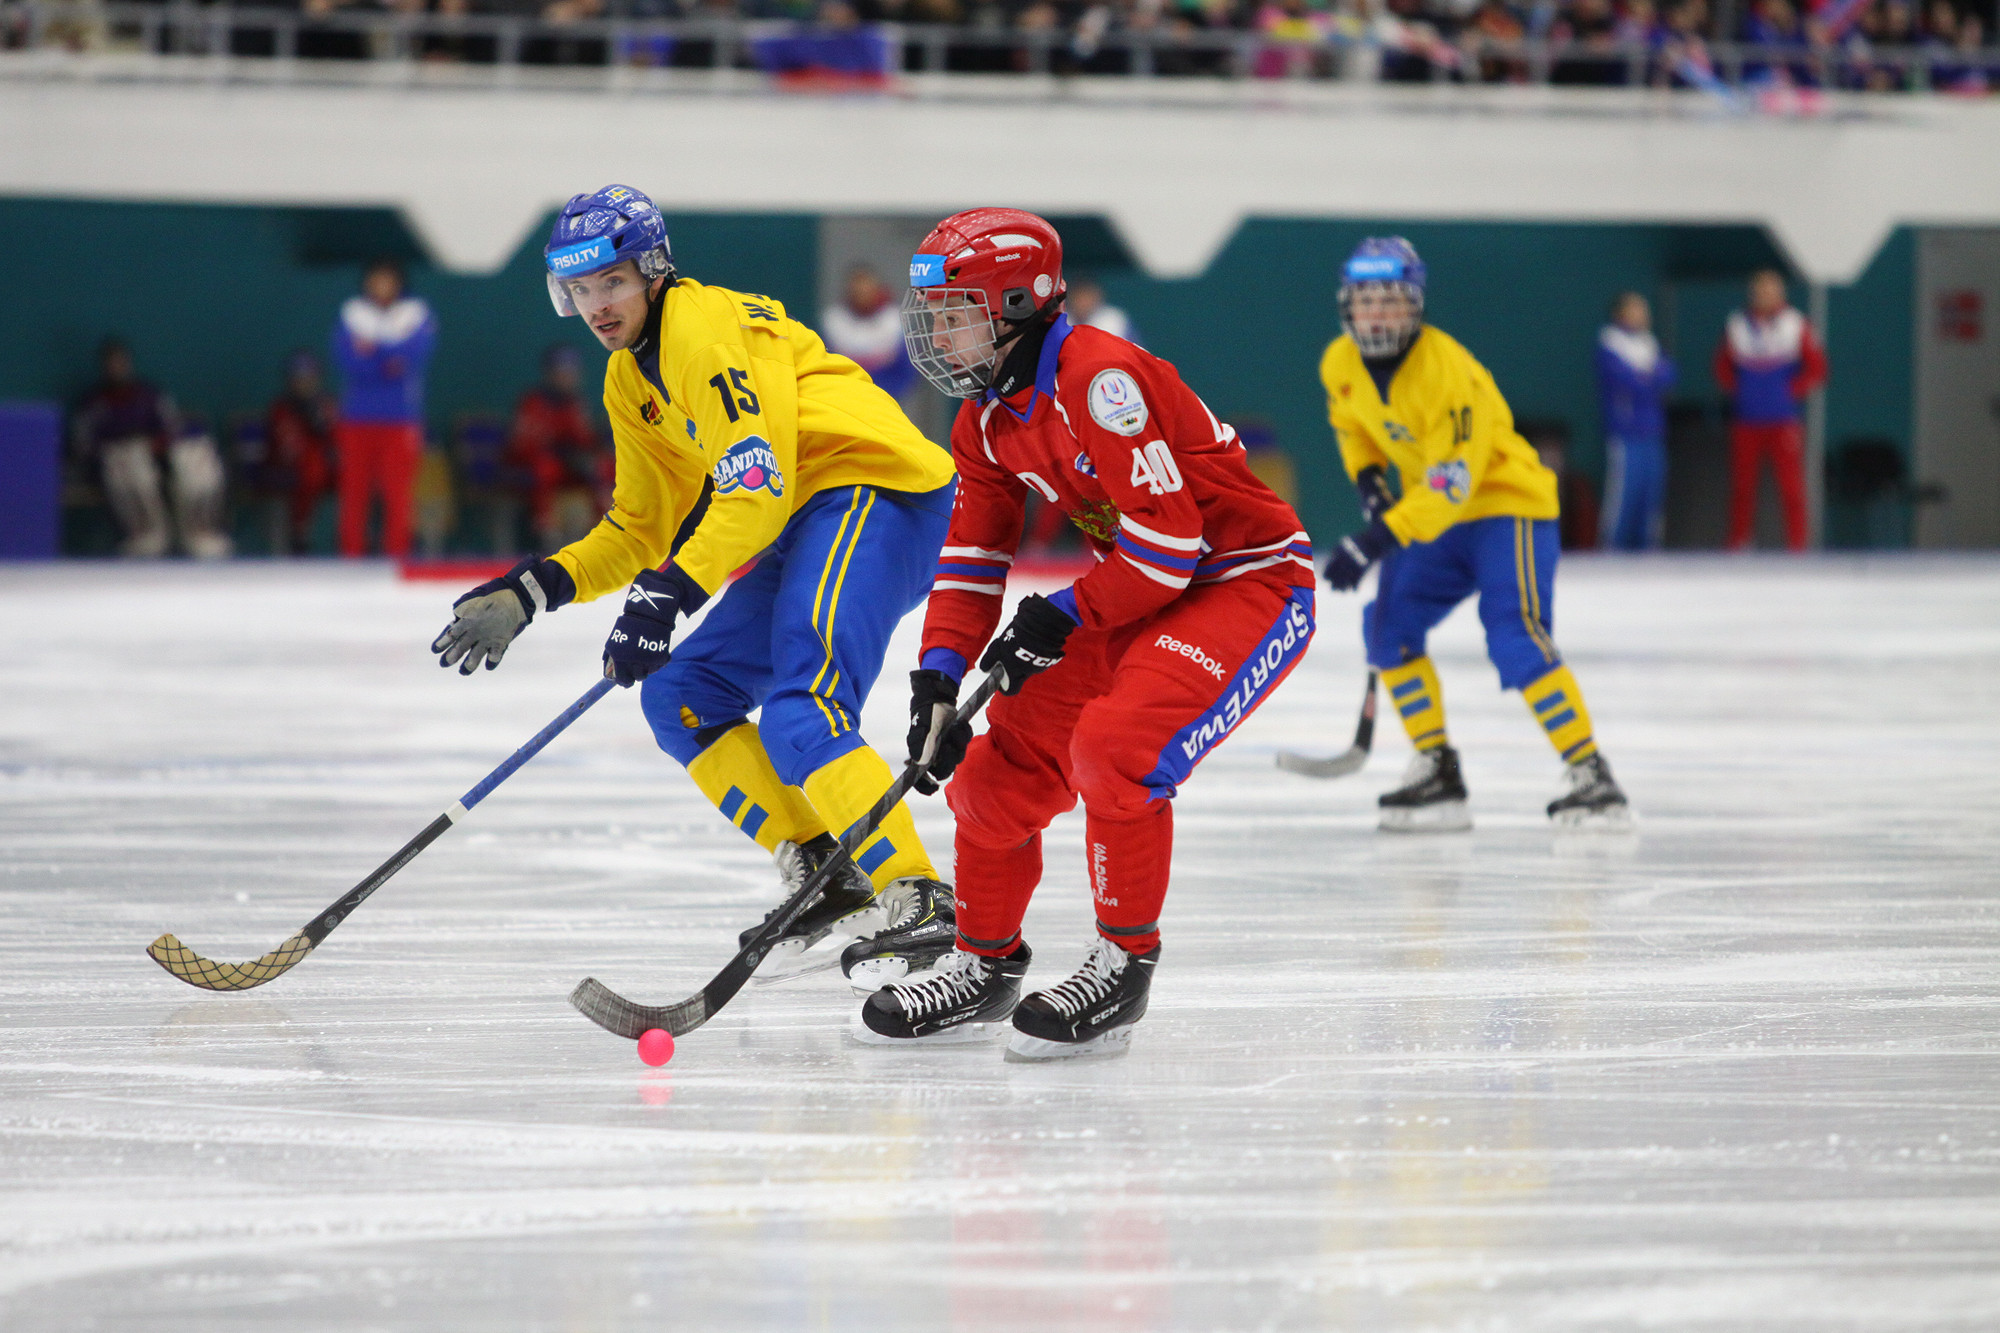 Hosts Russia take gold in the men's bandy final at Krasnoyarsk 2019